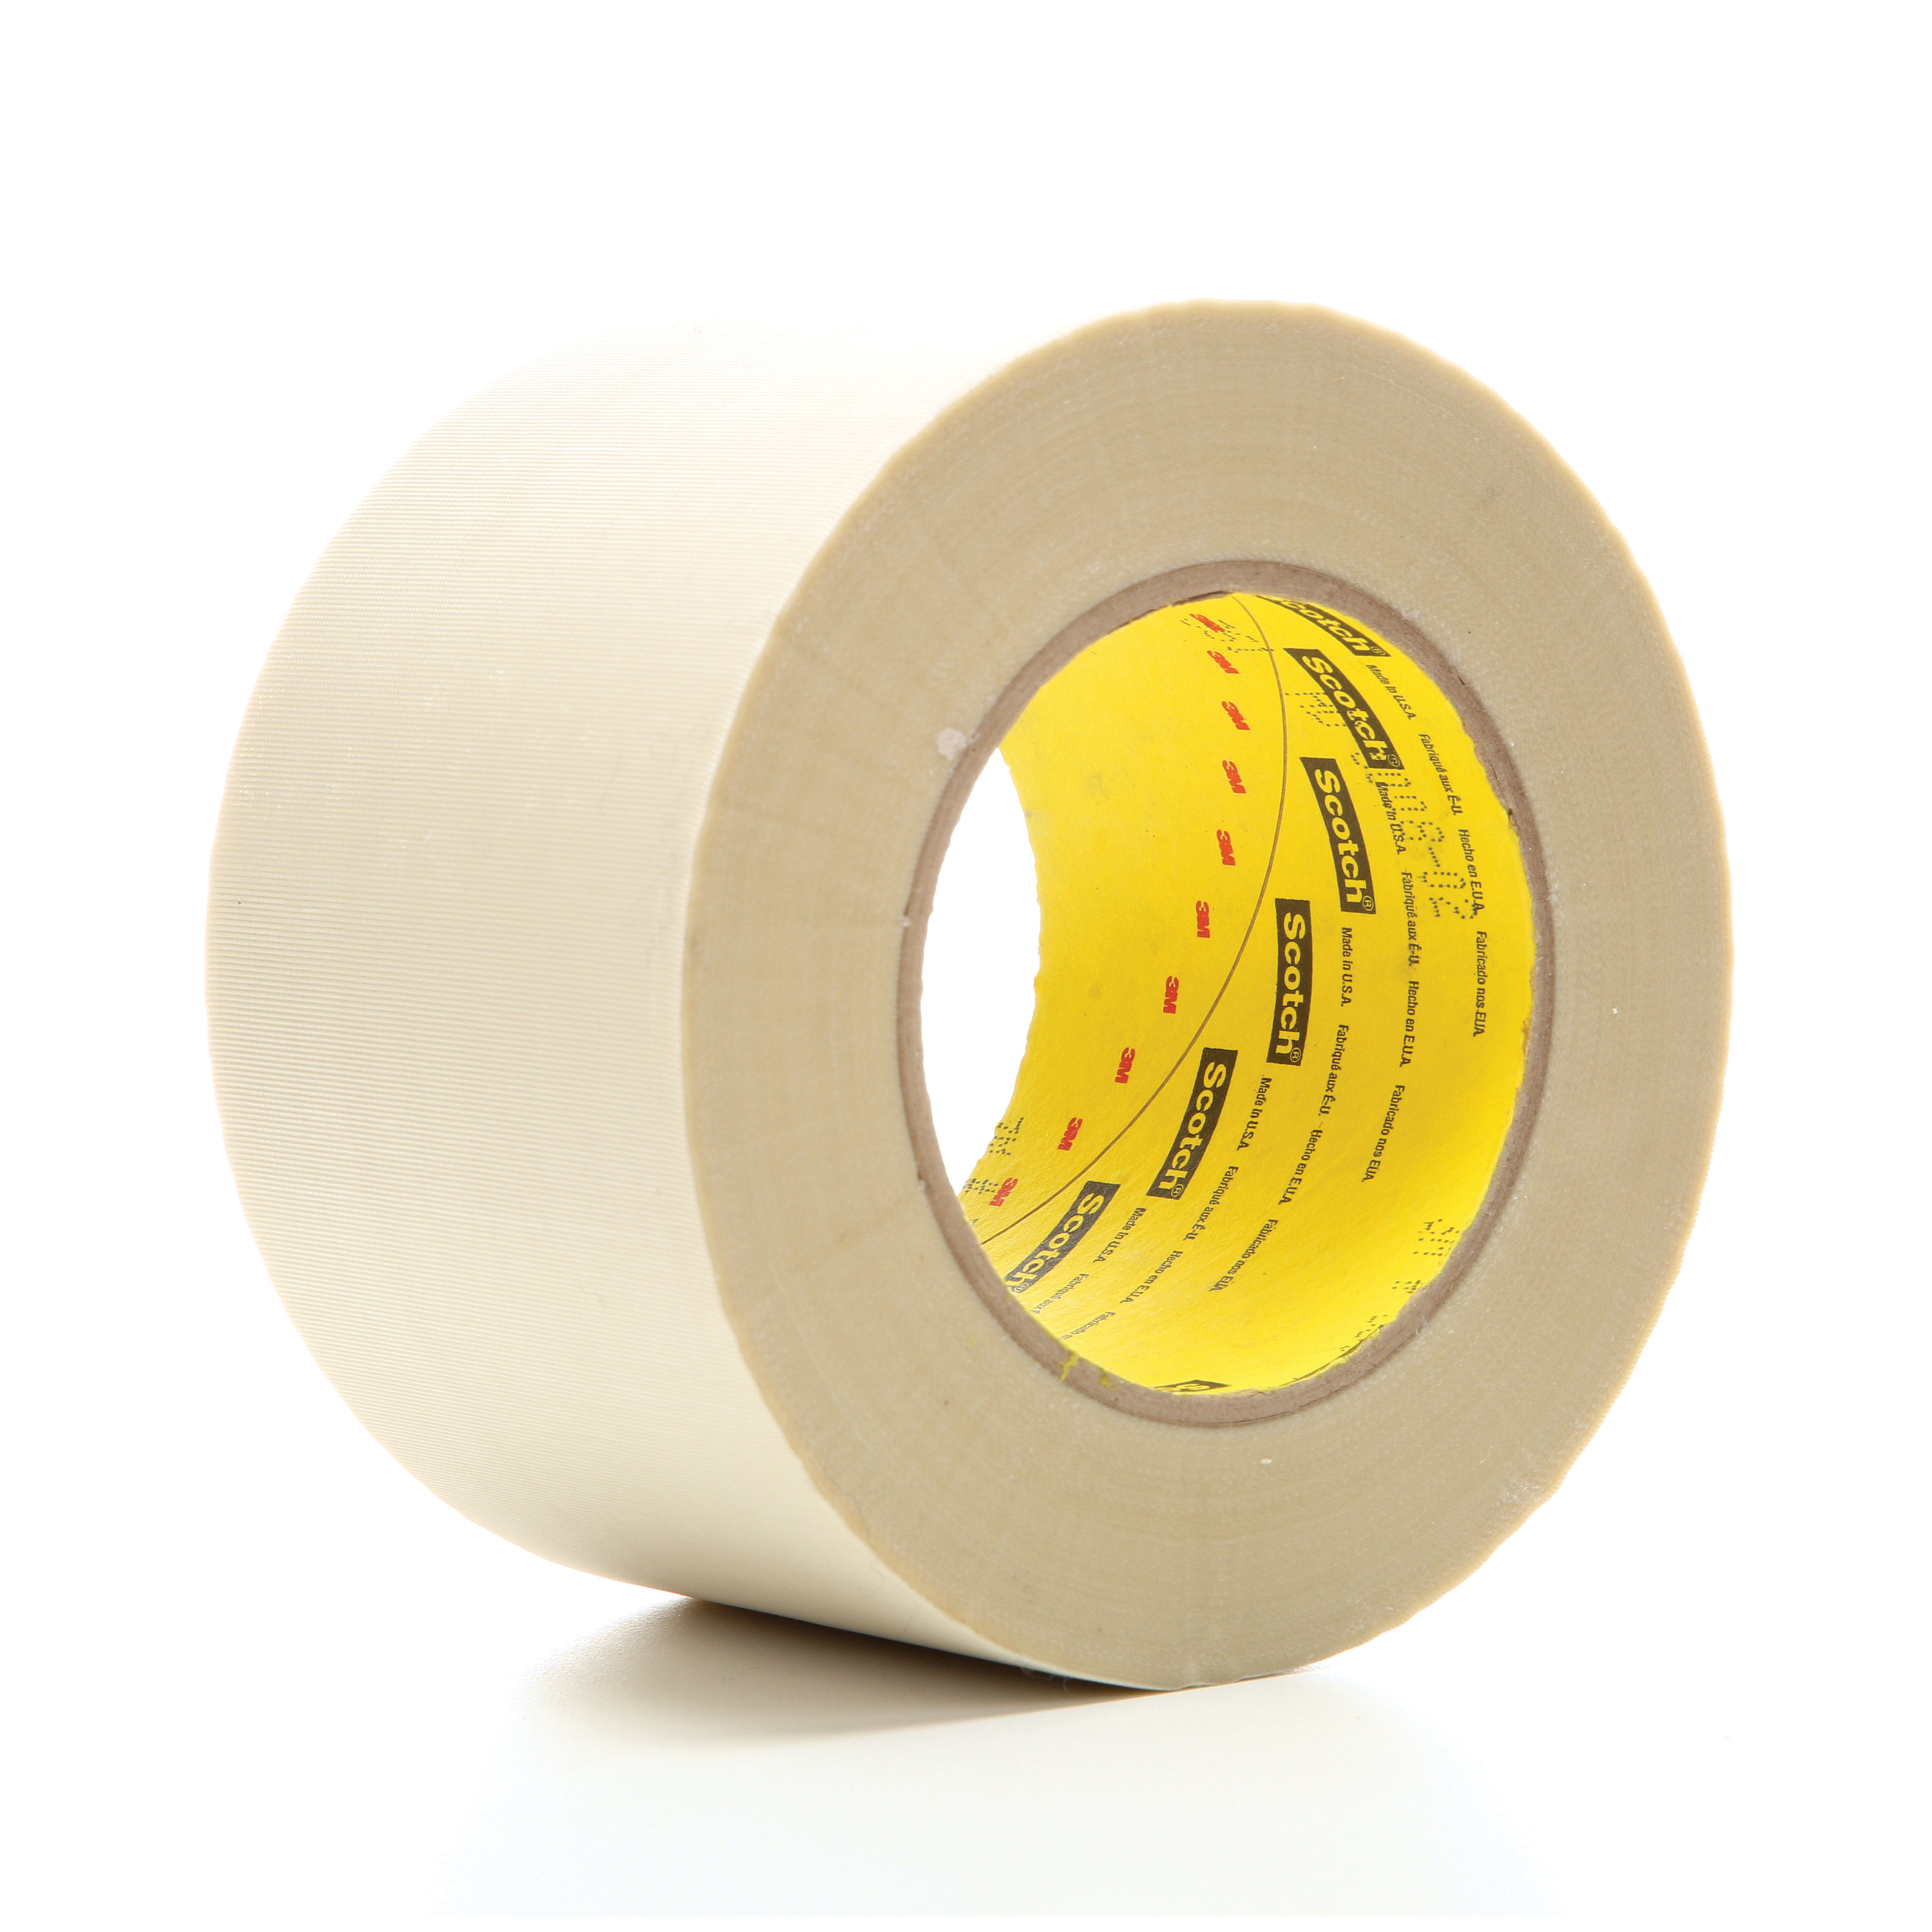 3M™ 021200-04994 Cloth Tape, 60 yd L x 3 in W, 6.4 mil THK, Silicon Adhesive, Glass Cloth Backing, White